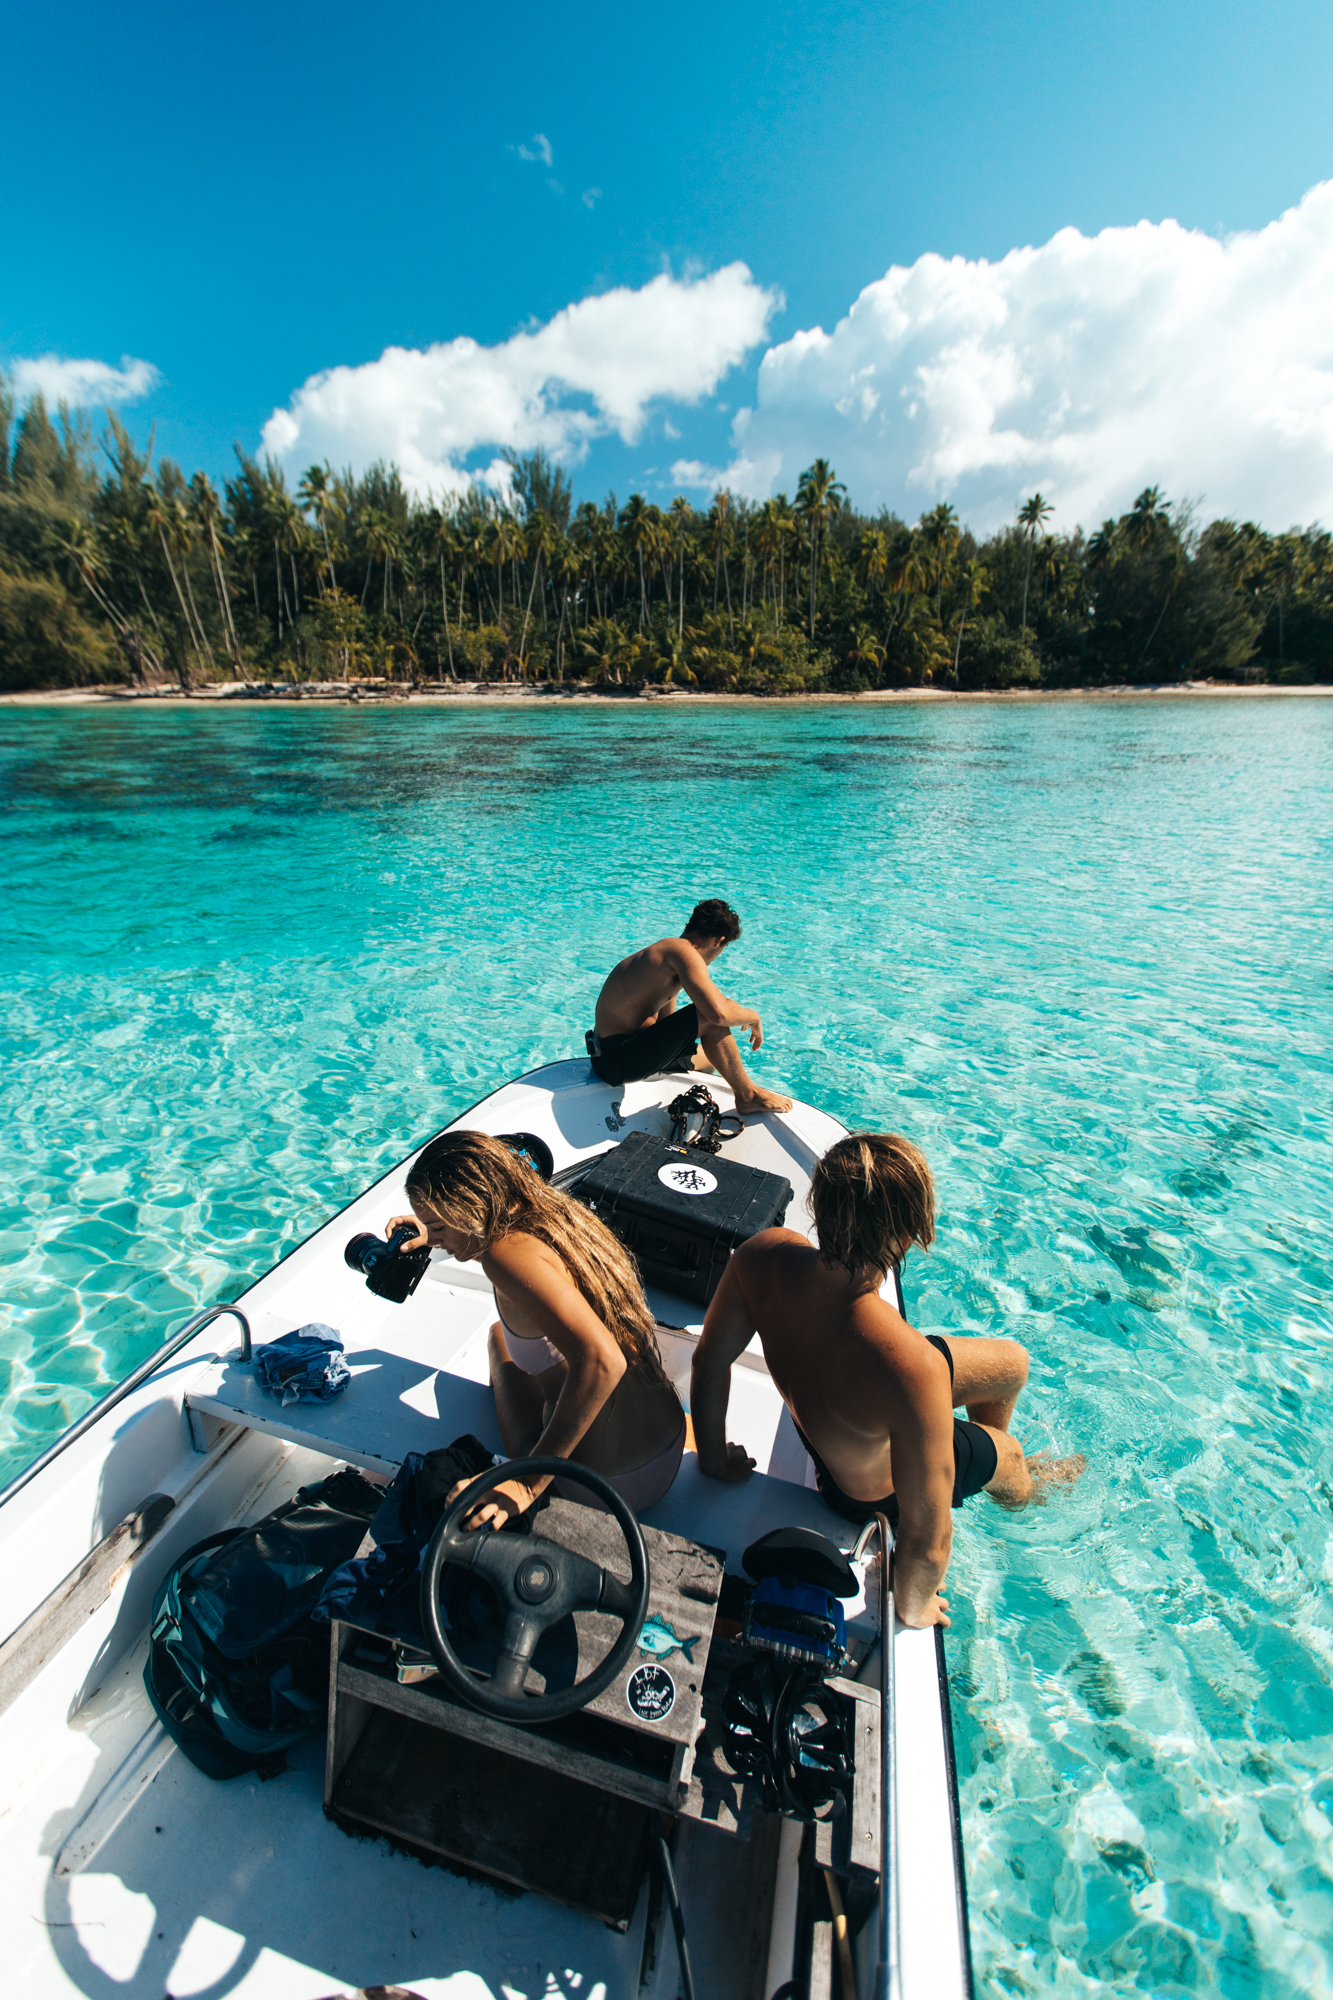 We boated out to the little motus and had the crystal clear water all to ourselves. We saw lots more fish, rays, and beautiful secret beaches!